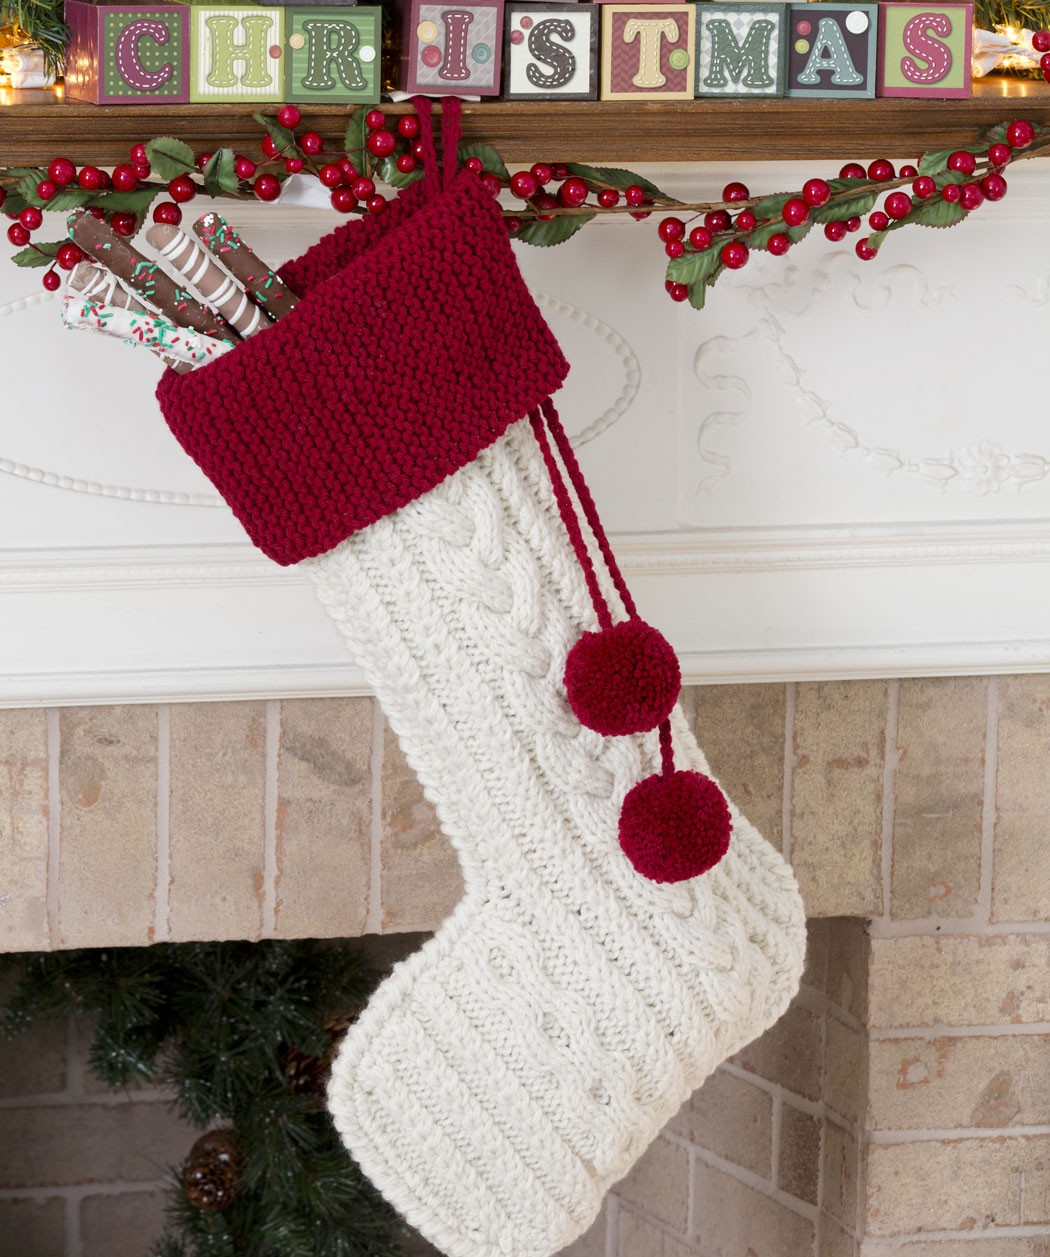 Knitting Patterns For Xmas Stockings : Knitted Christmas Stocking Patterns A Knitting Blog